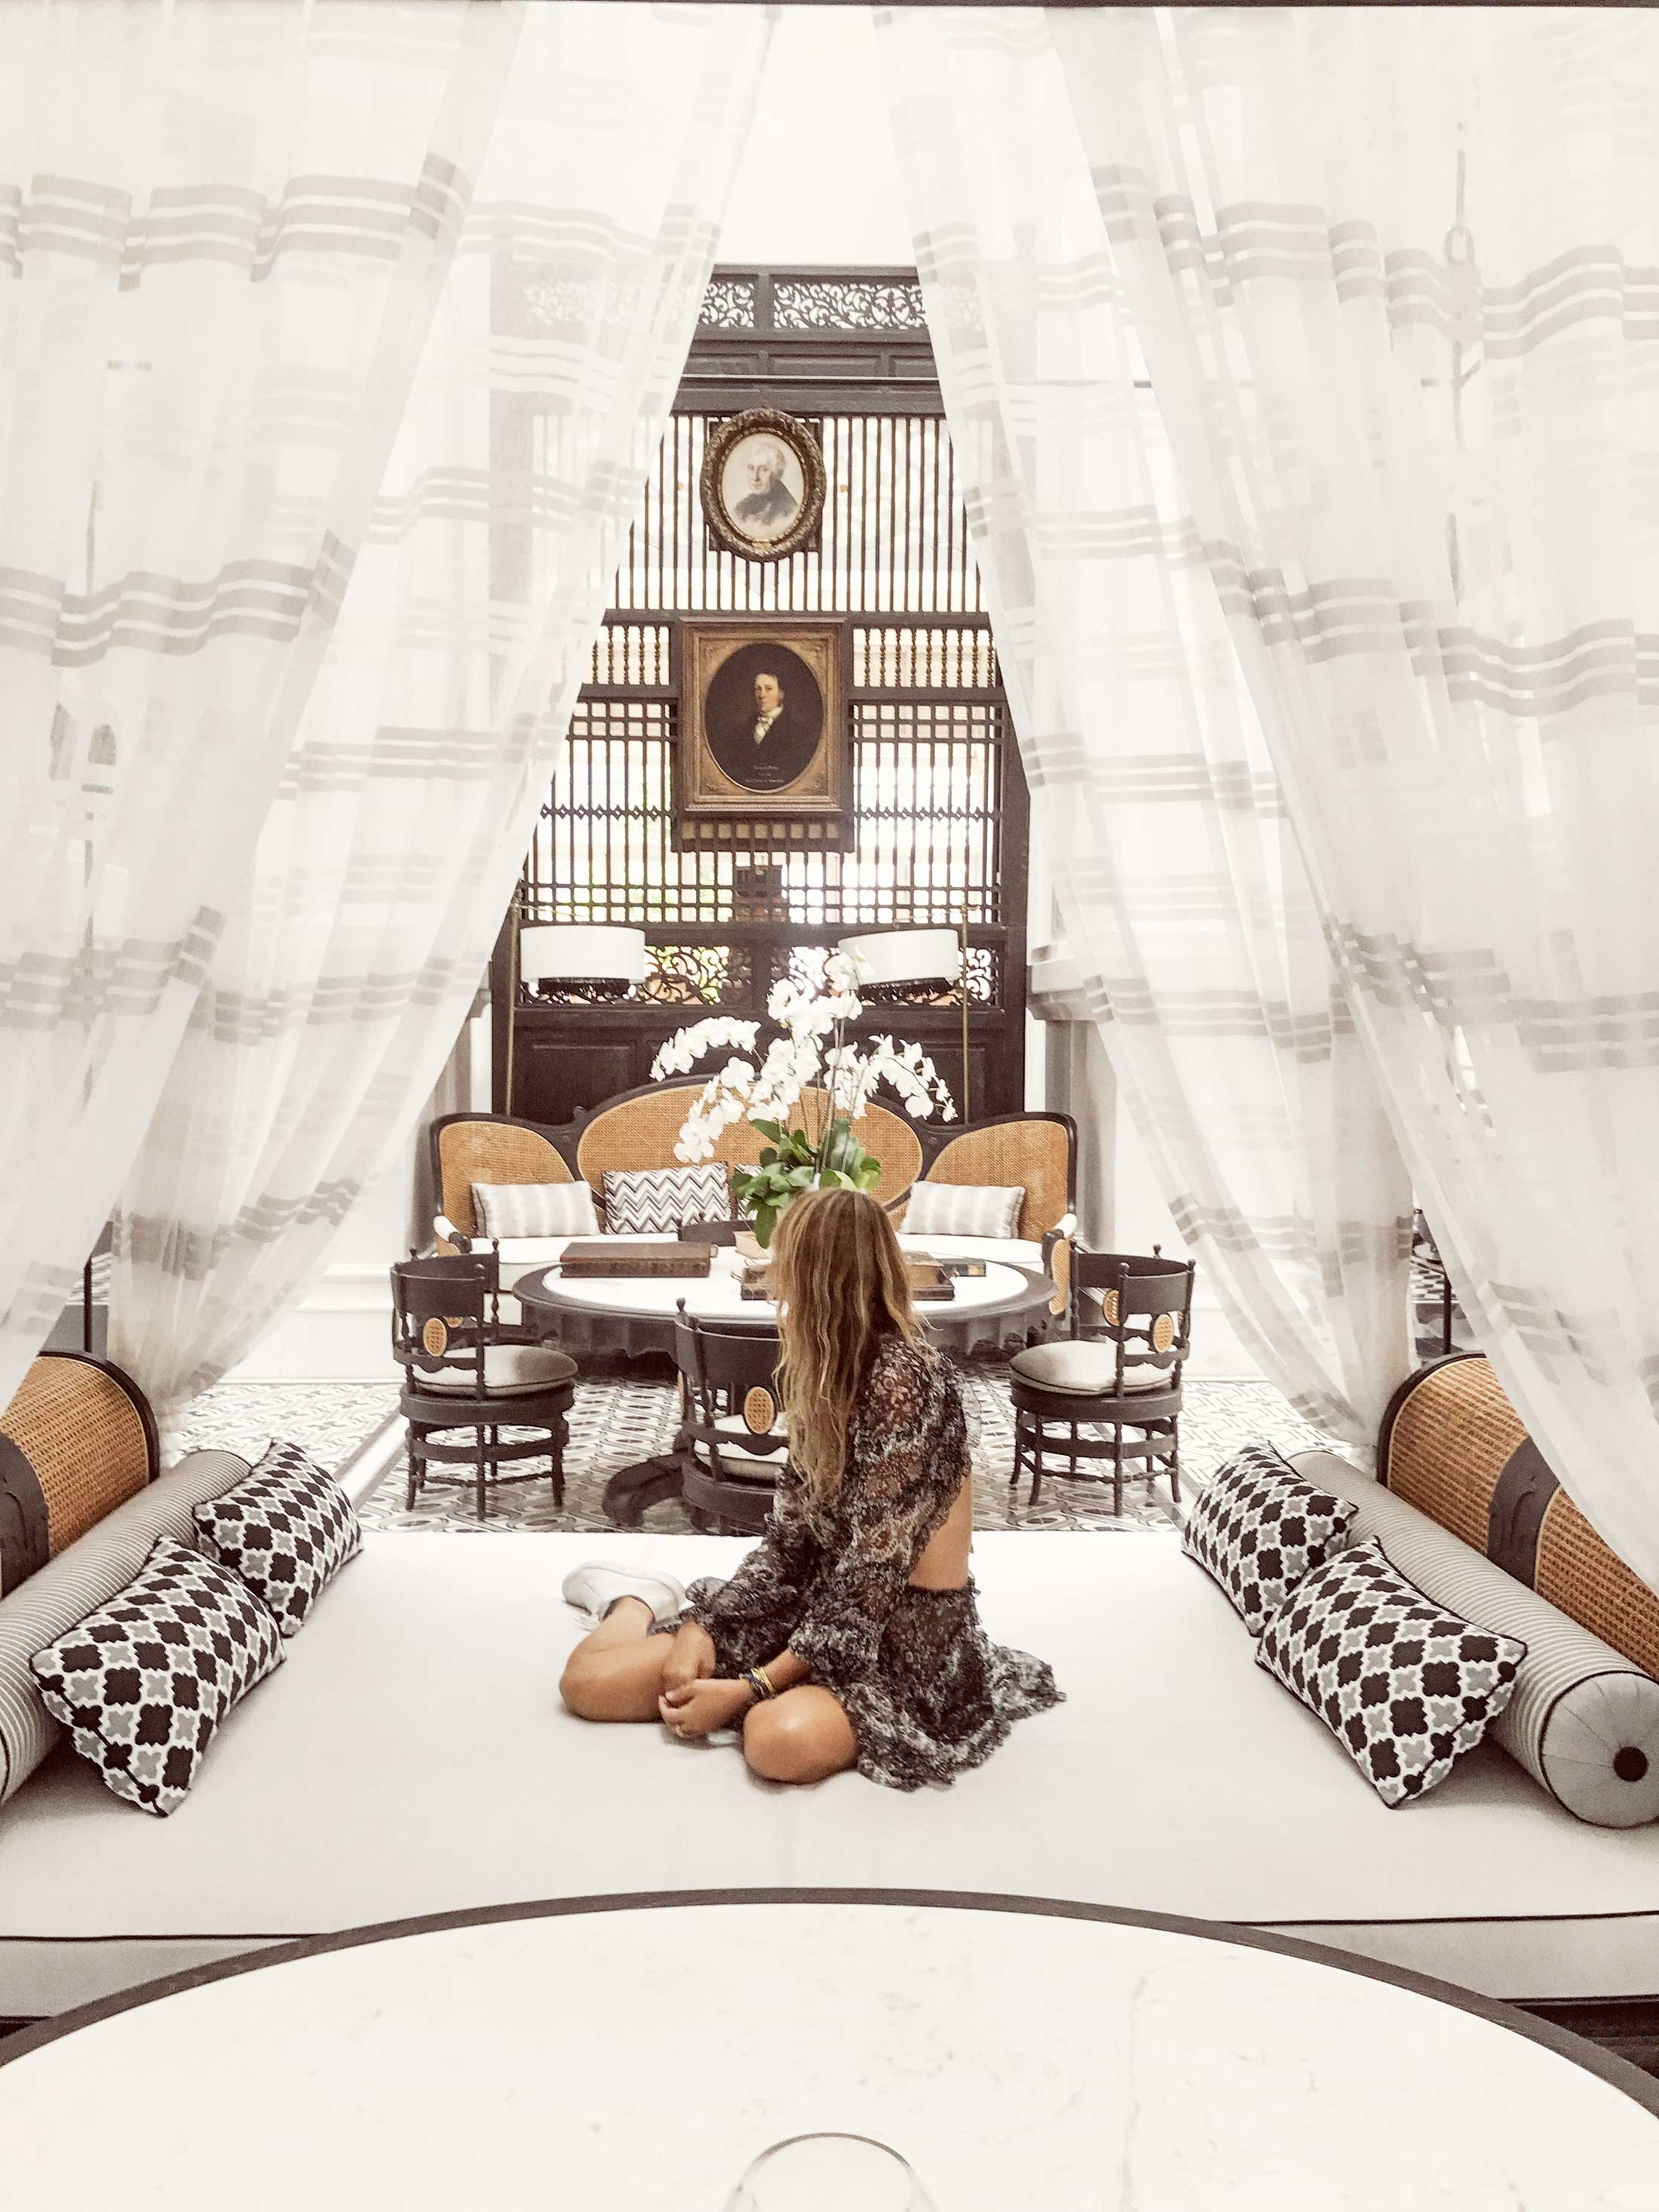 Romy sitting on a large canopy bed with luxurious white curtains and patterned pillows